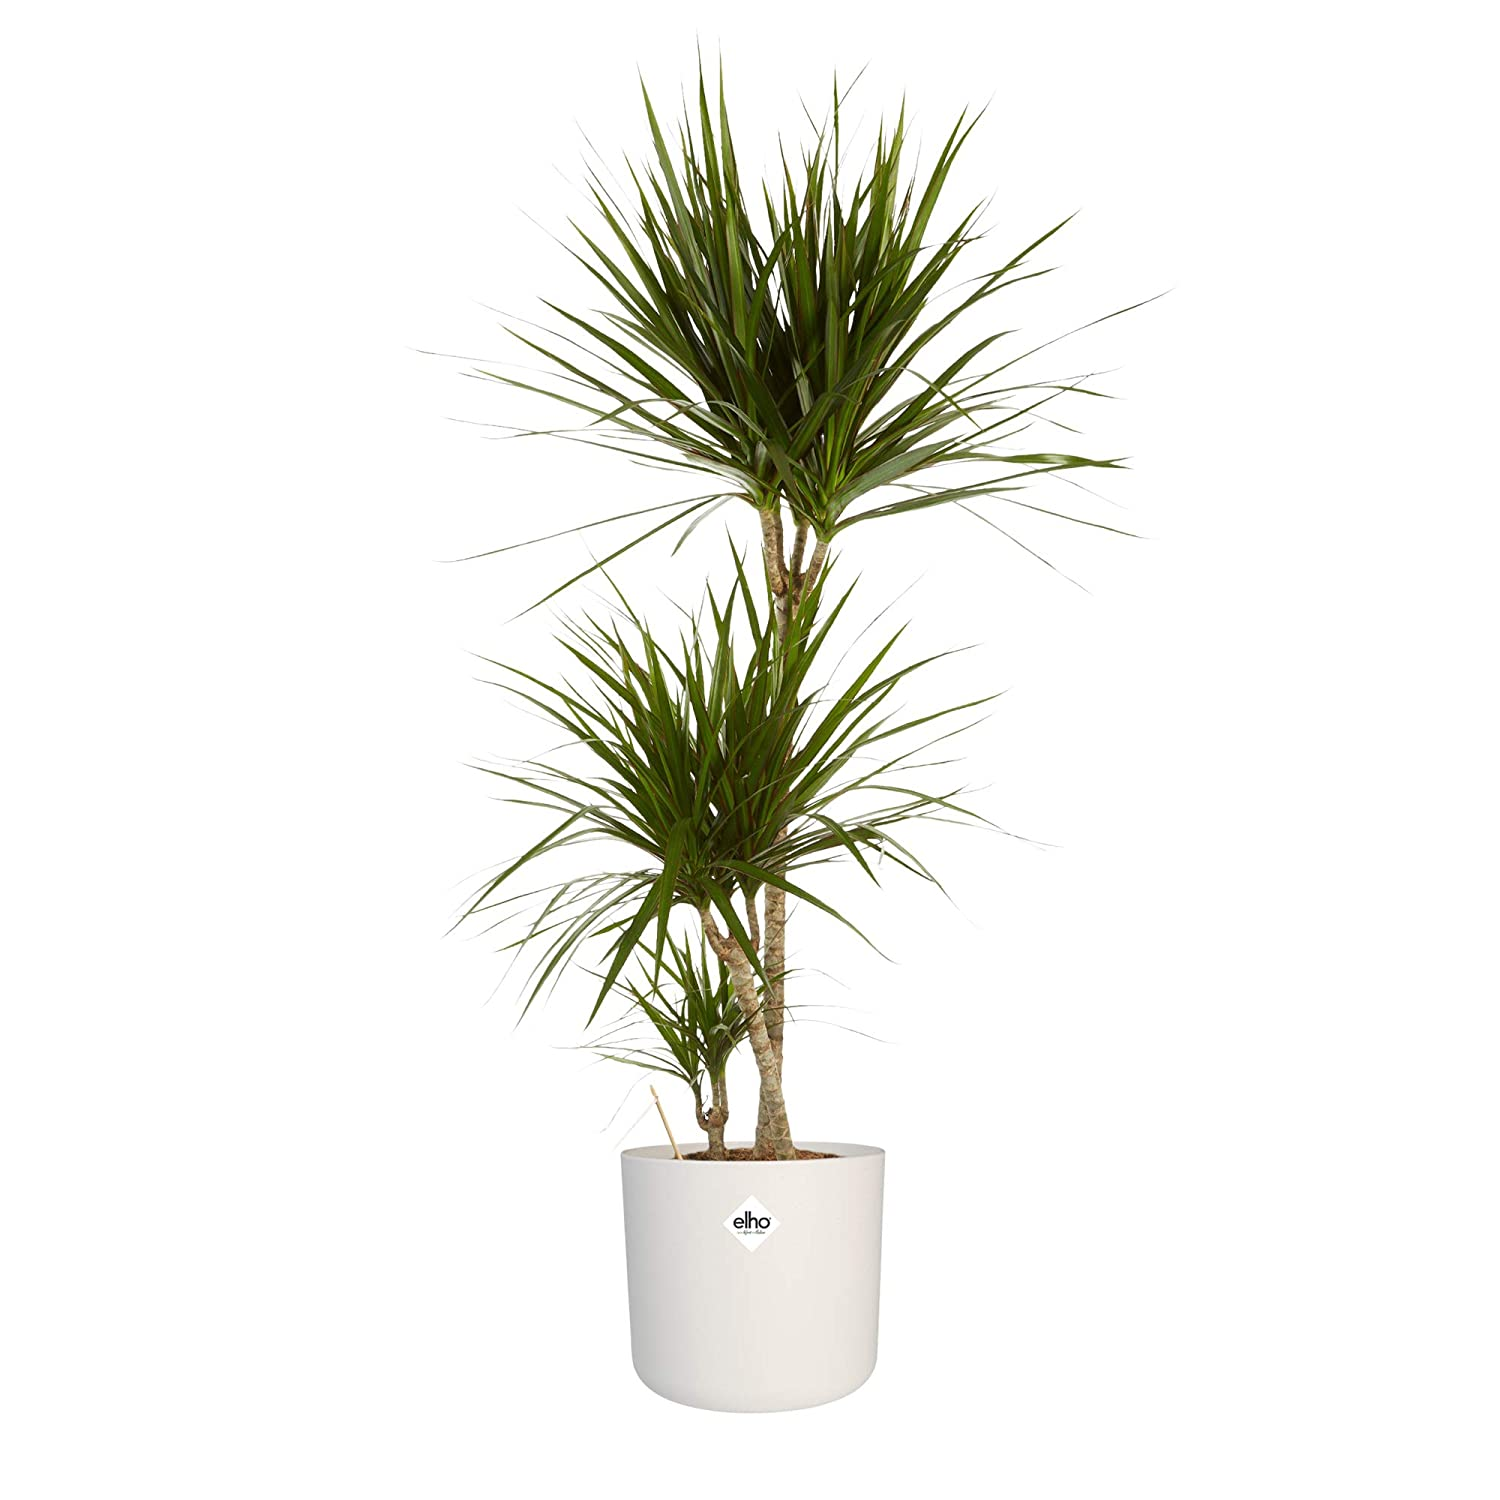 Indoor Plant from Botanicly Dragon Tree with White Cylindrical Plant Pot as a Set Height: 125 cm Dracaena Marginata